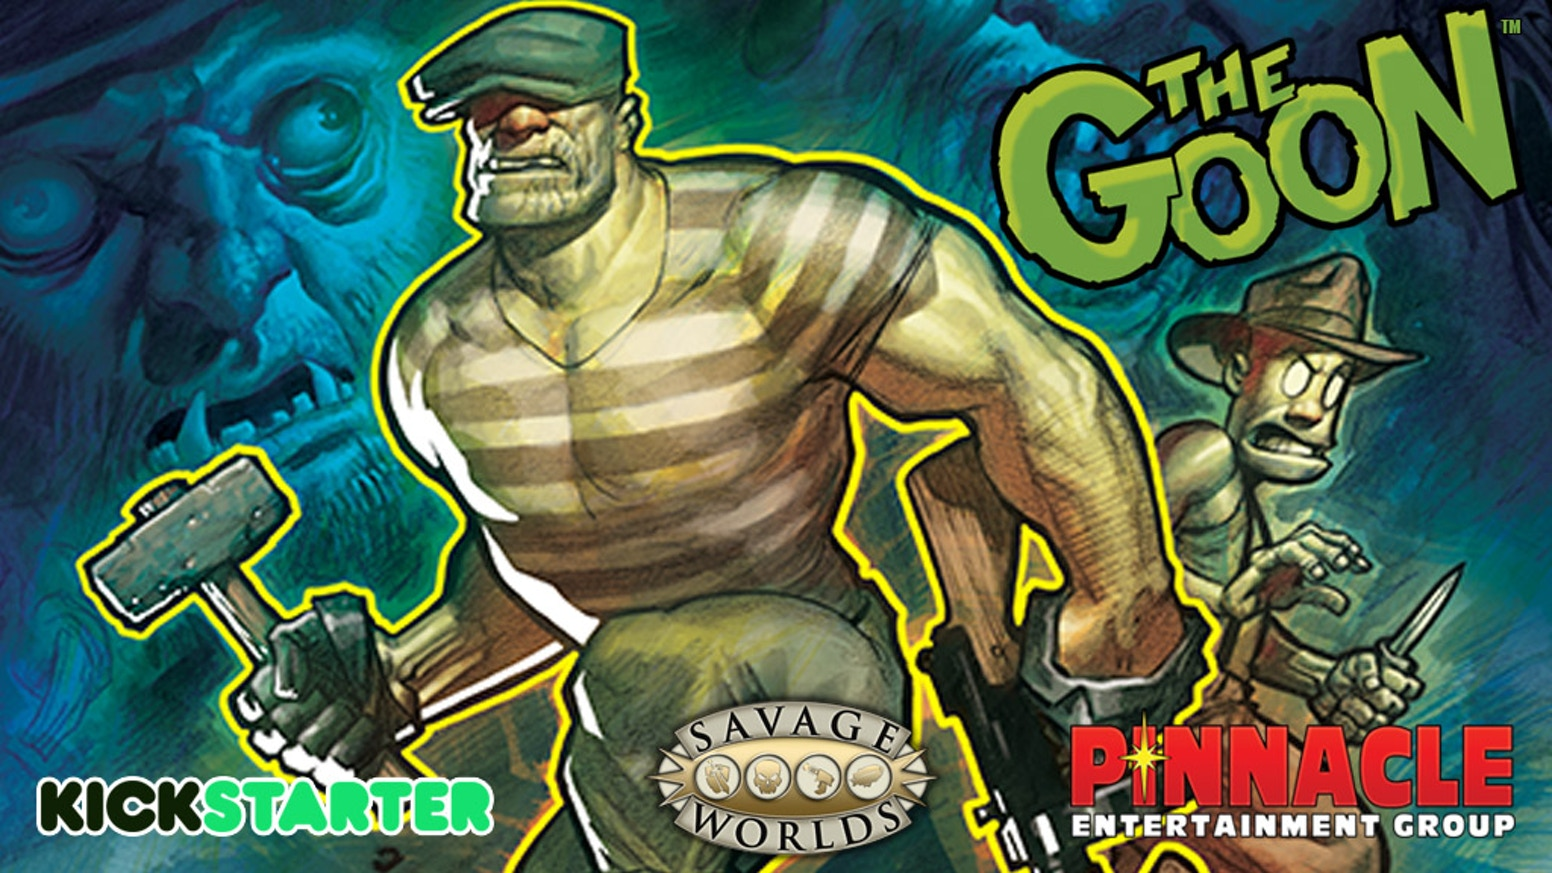 A new RPG setting for Savage Worlds based on The Goon™ graphic novels from Dark Horse Comics™!